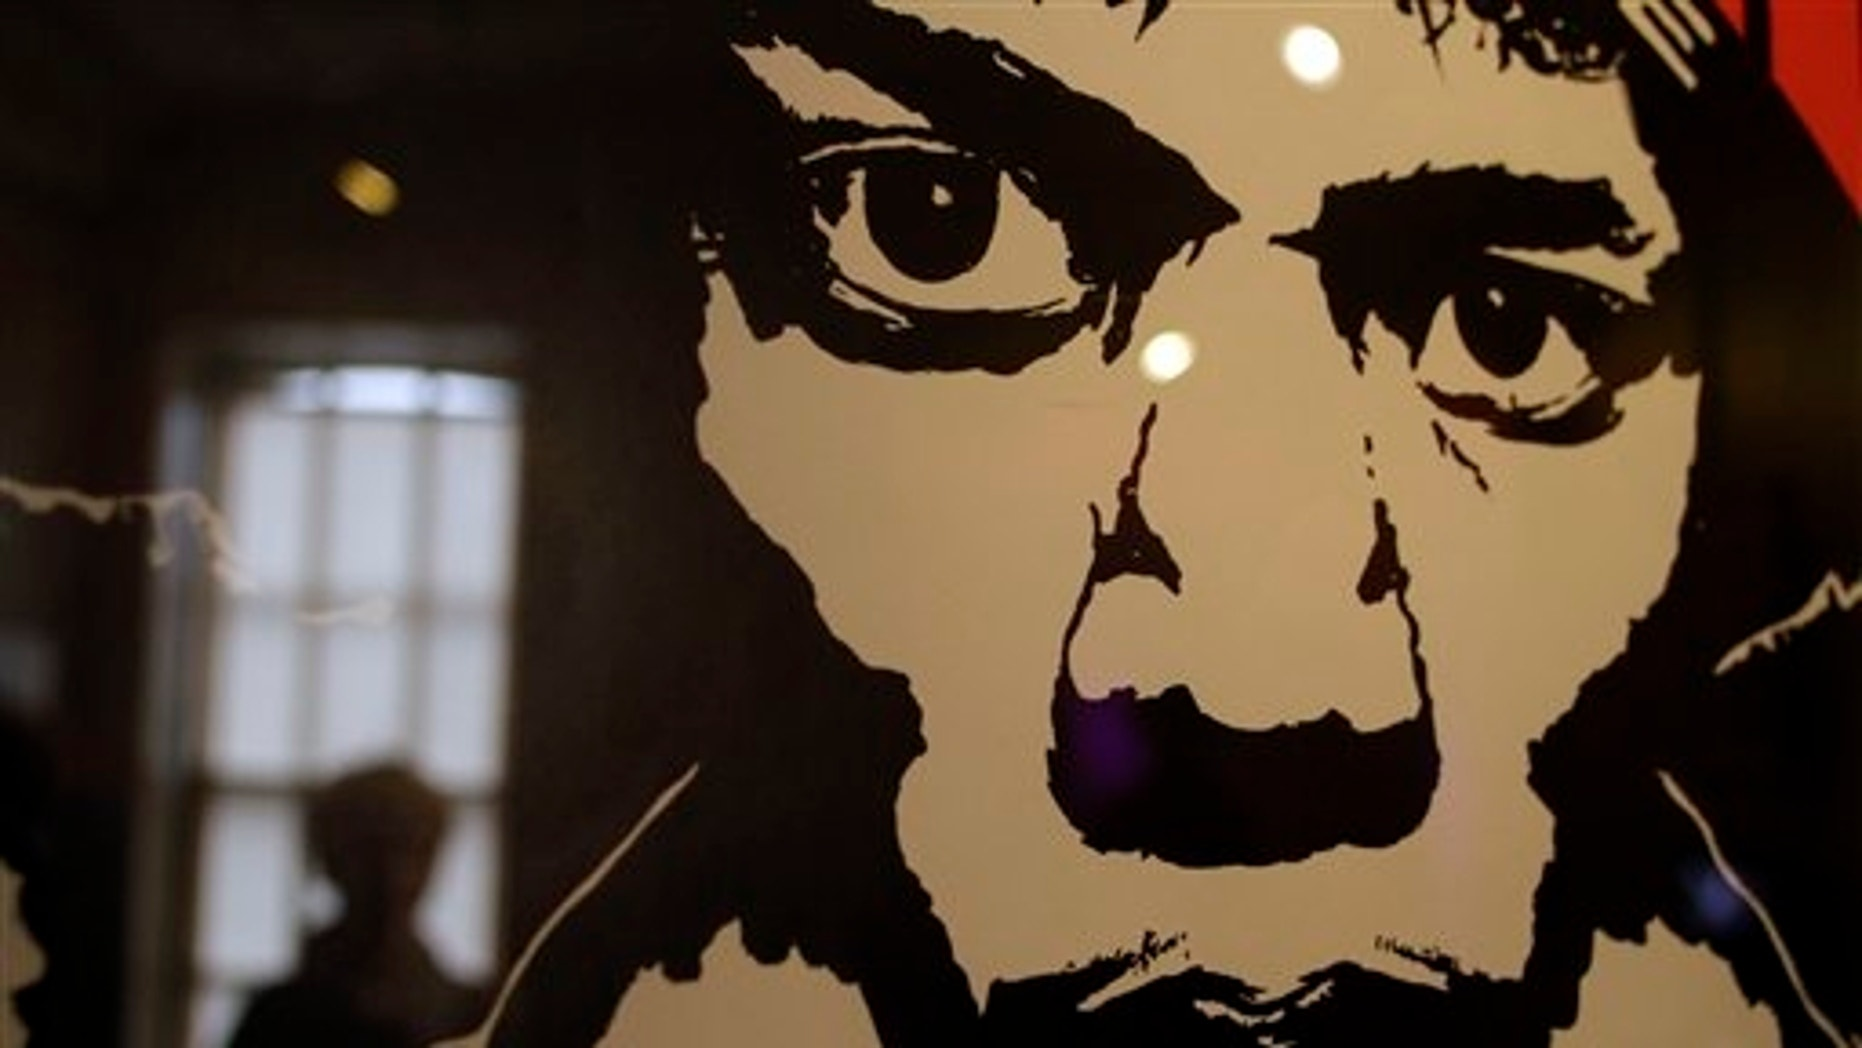 A vintage concert poster depicting late US musician Jimi Hendrix, is seen in a exhibition at the Handel House Museum, in central London's Mayfair area. (AP)